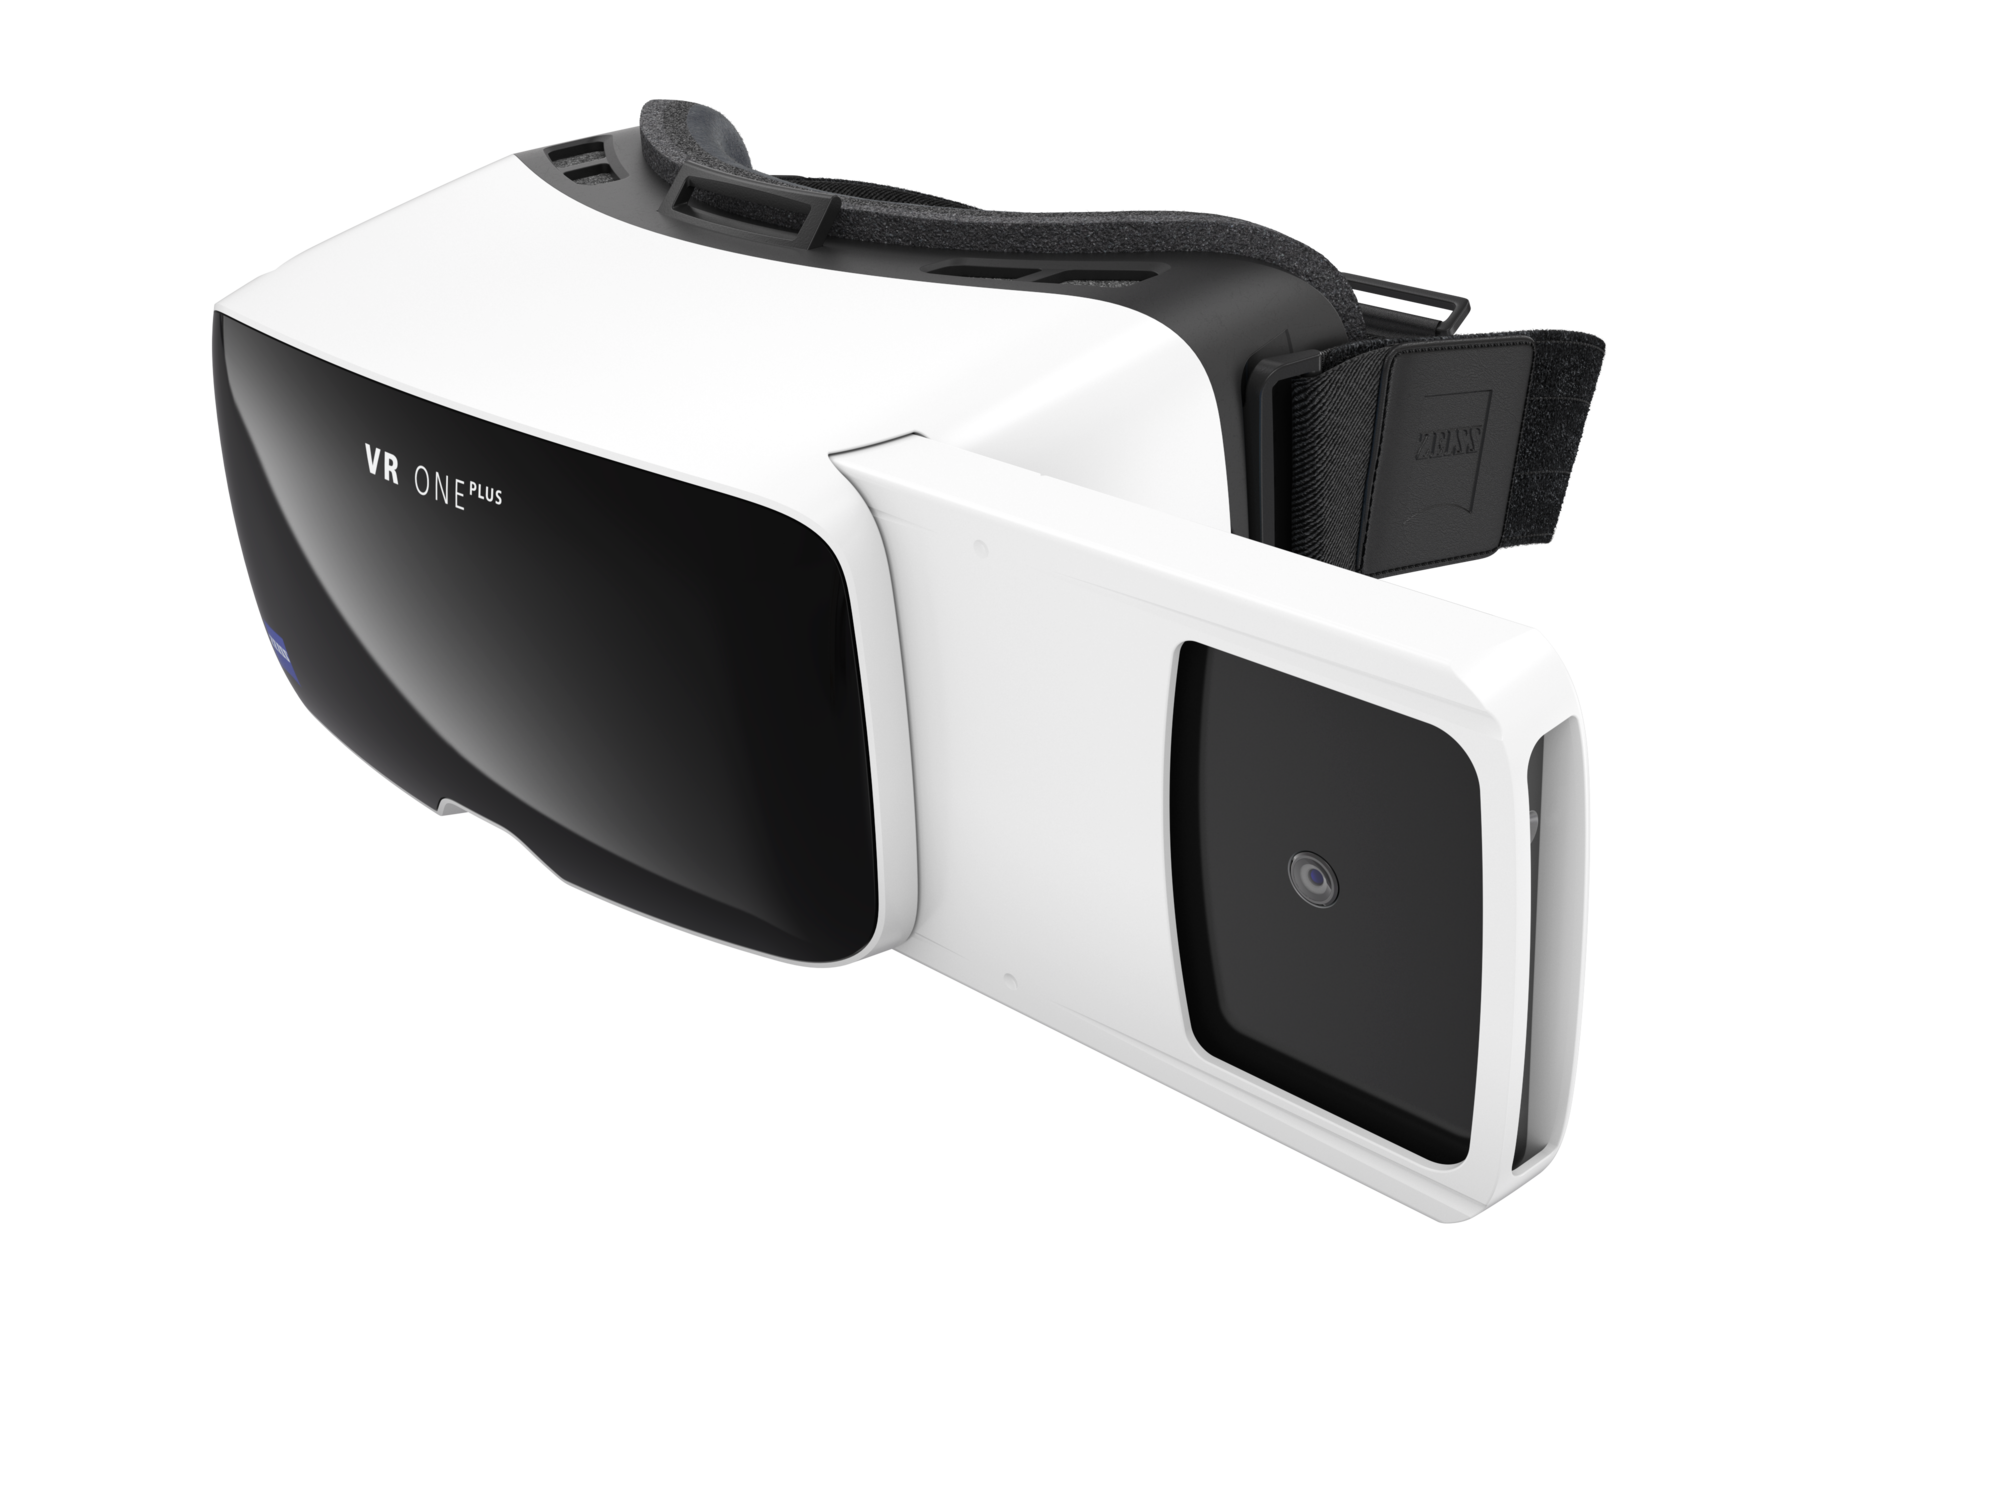 Vr Headset HD PNG - 95965